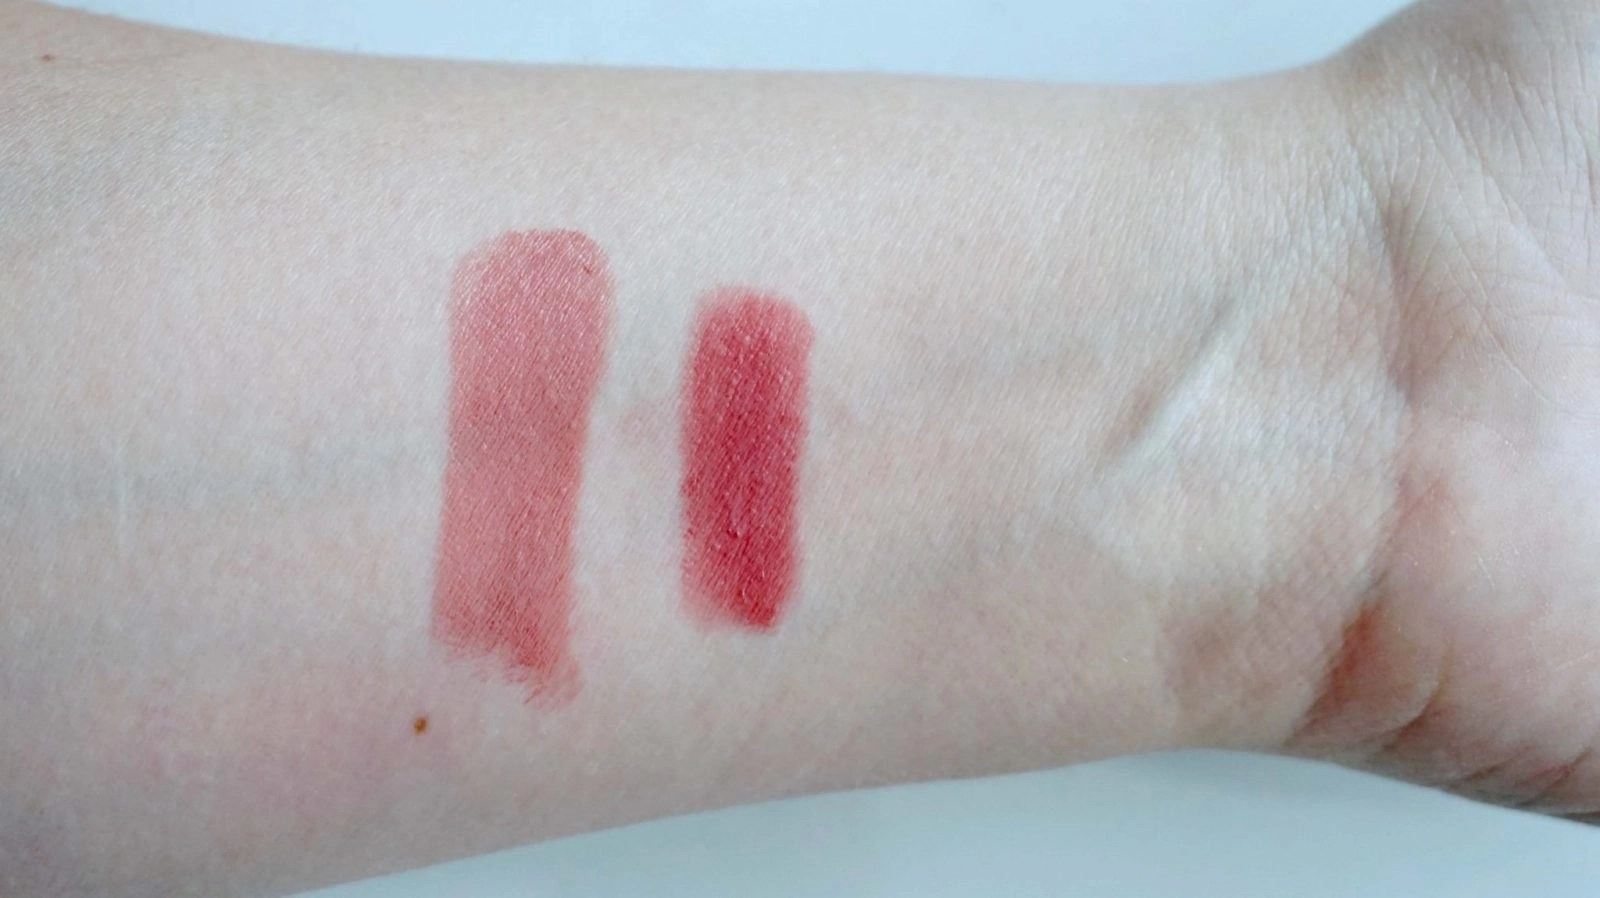 Tarte and Tom Ford Lip Products Swatches